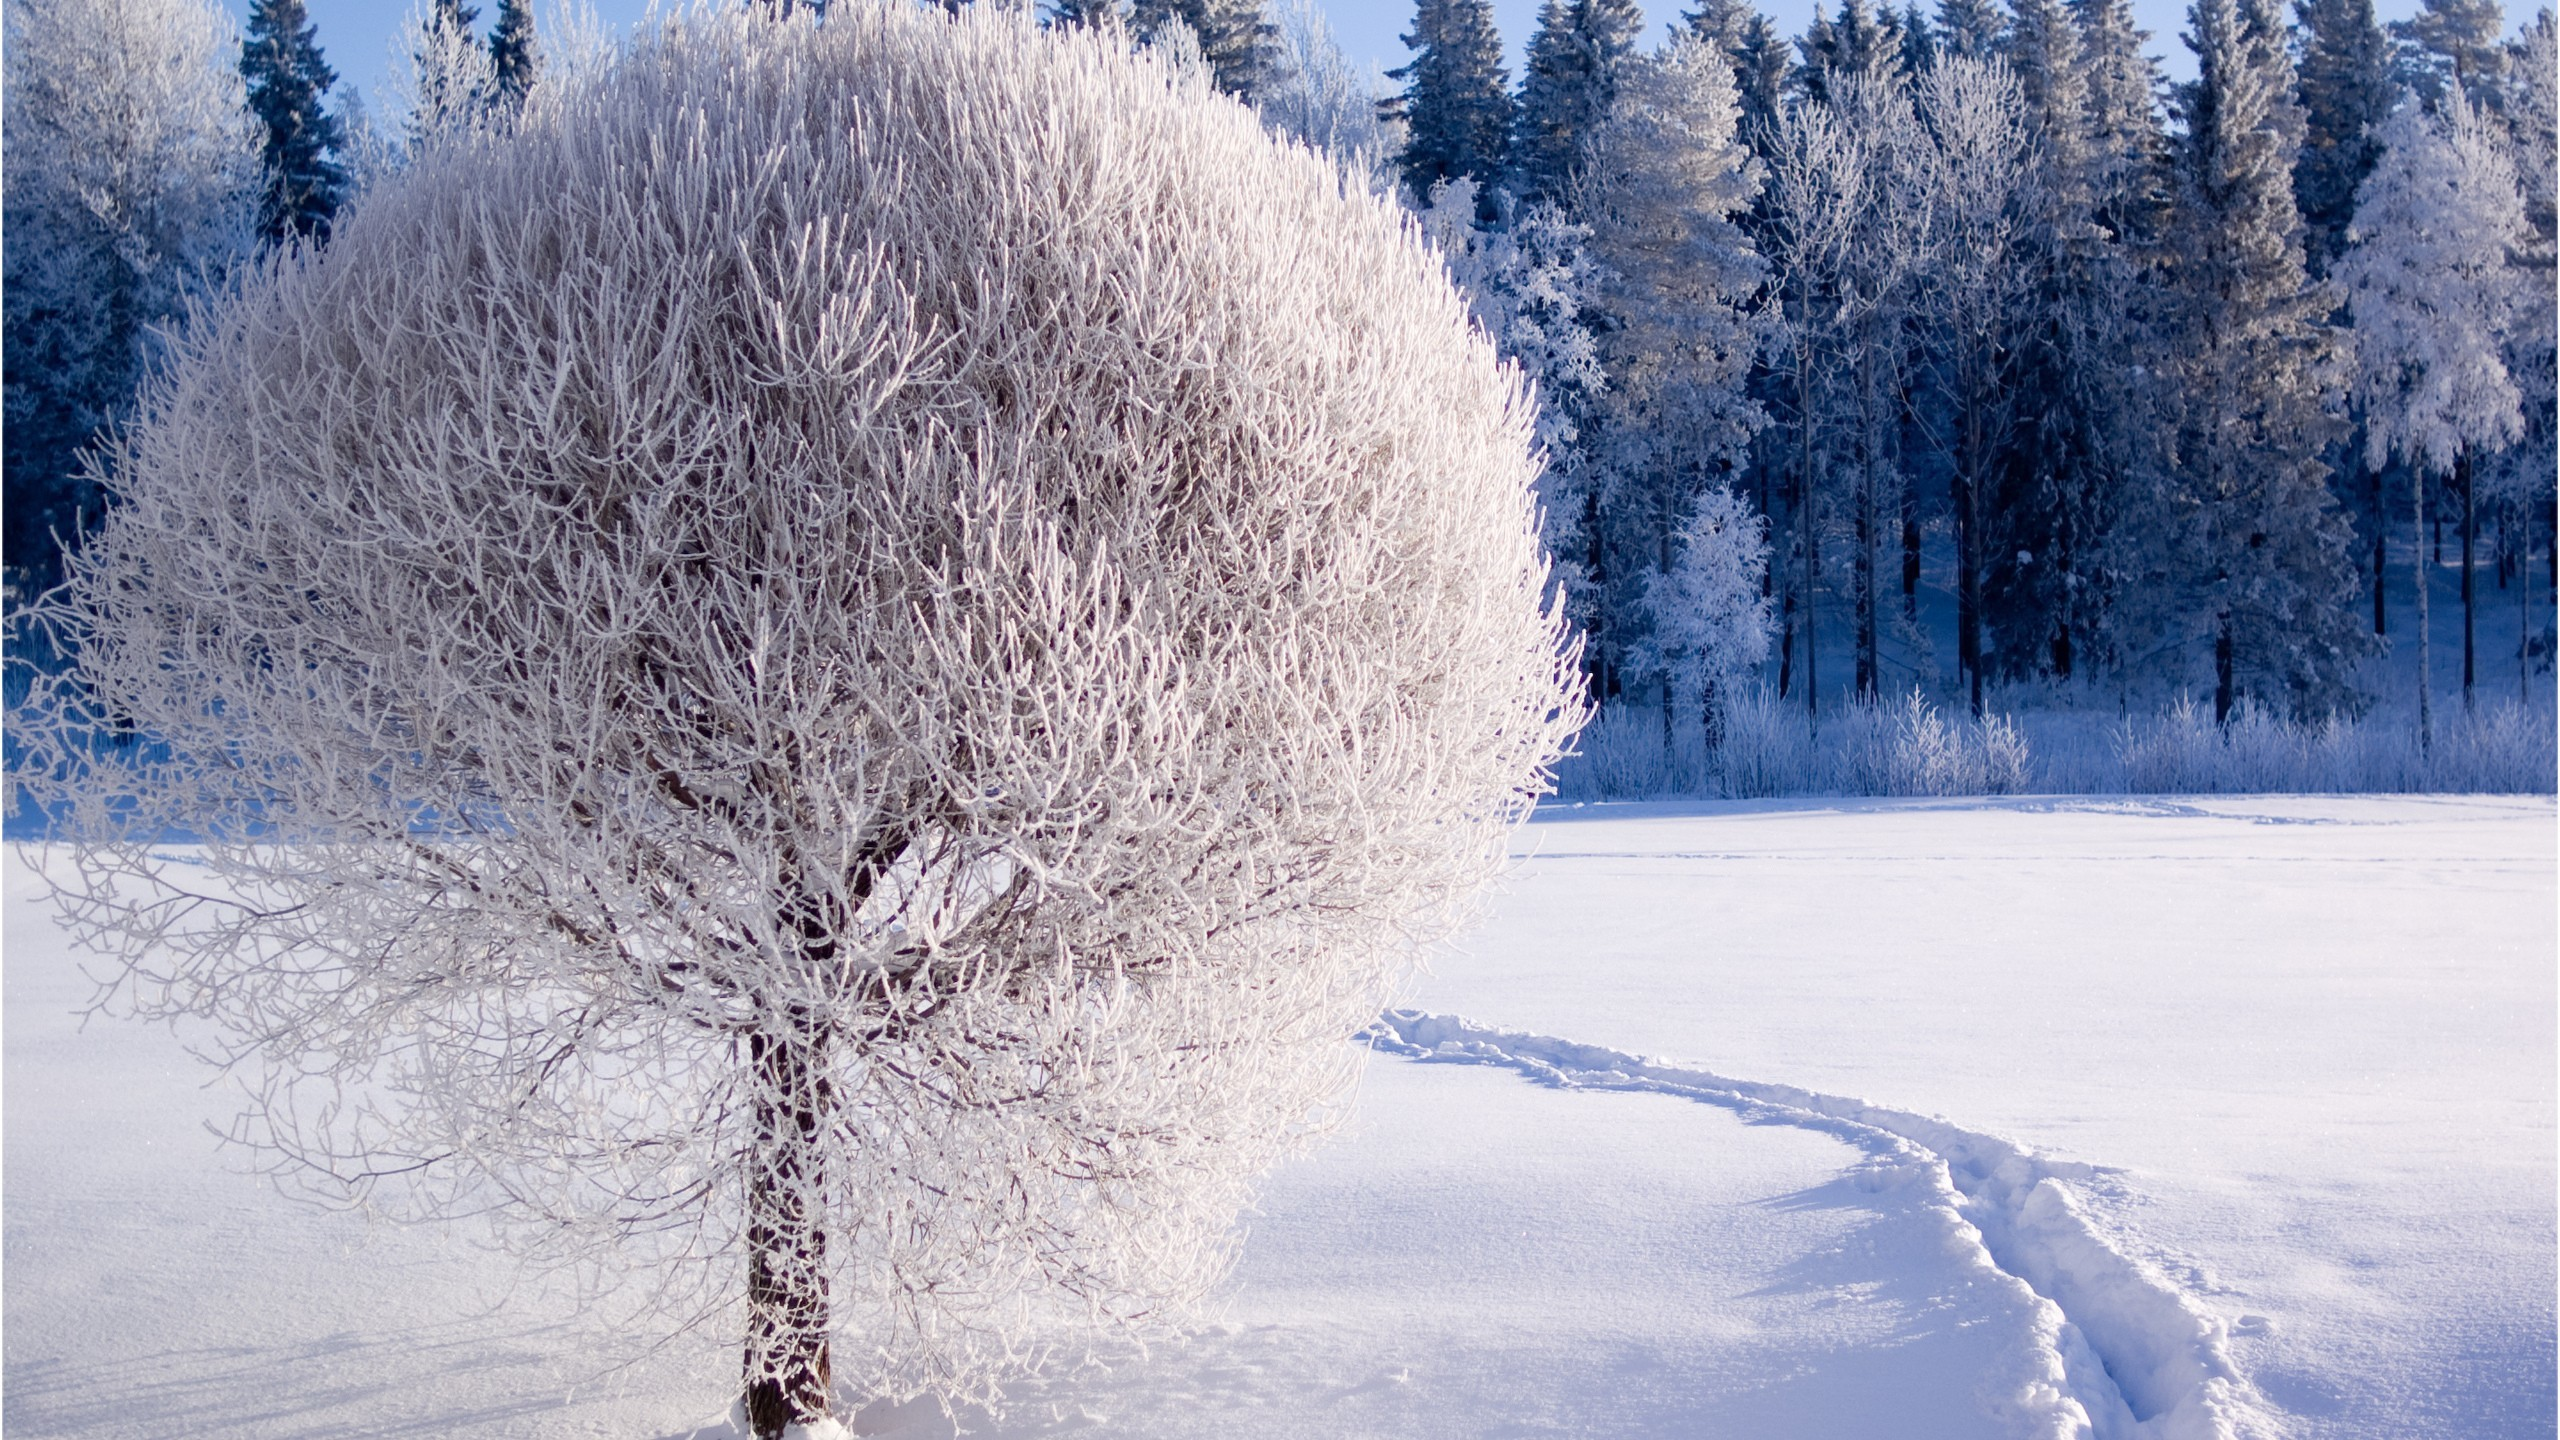 Res: 2560x1440, Scene Snow Forest Landscape Snowy Trees Tree Winter Nature Picture Wallpaper